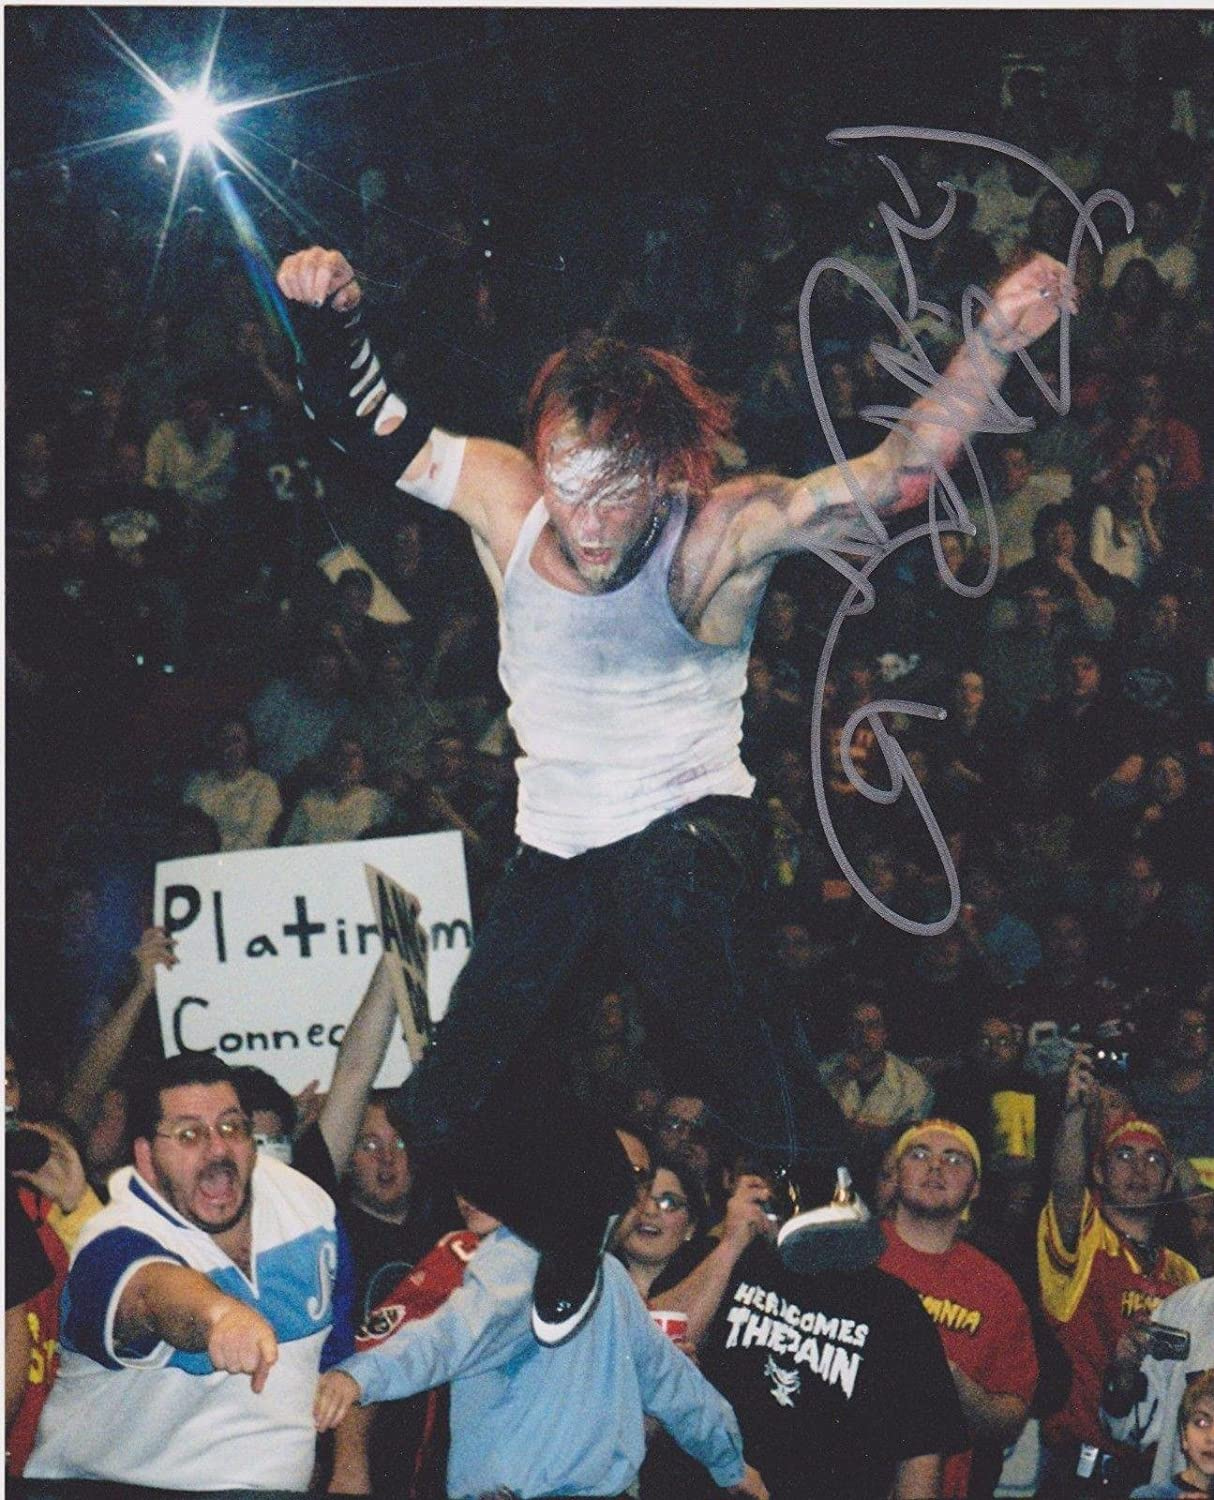 Wwe tna jeff hardy autographed 11x14 photo auto signed autograph - Jeff Hardy Signed Wwe 8x10 Photo Autographed Wrestling Photos At Amazon S Sports Collectibles Store